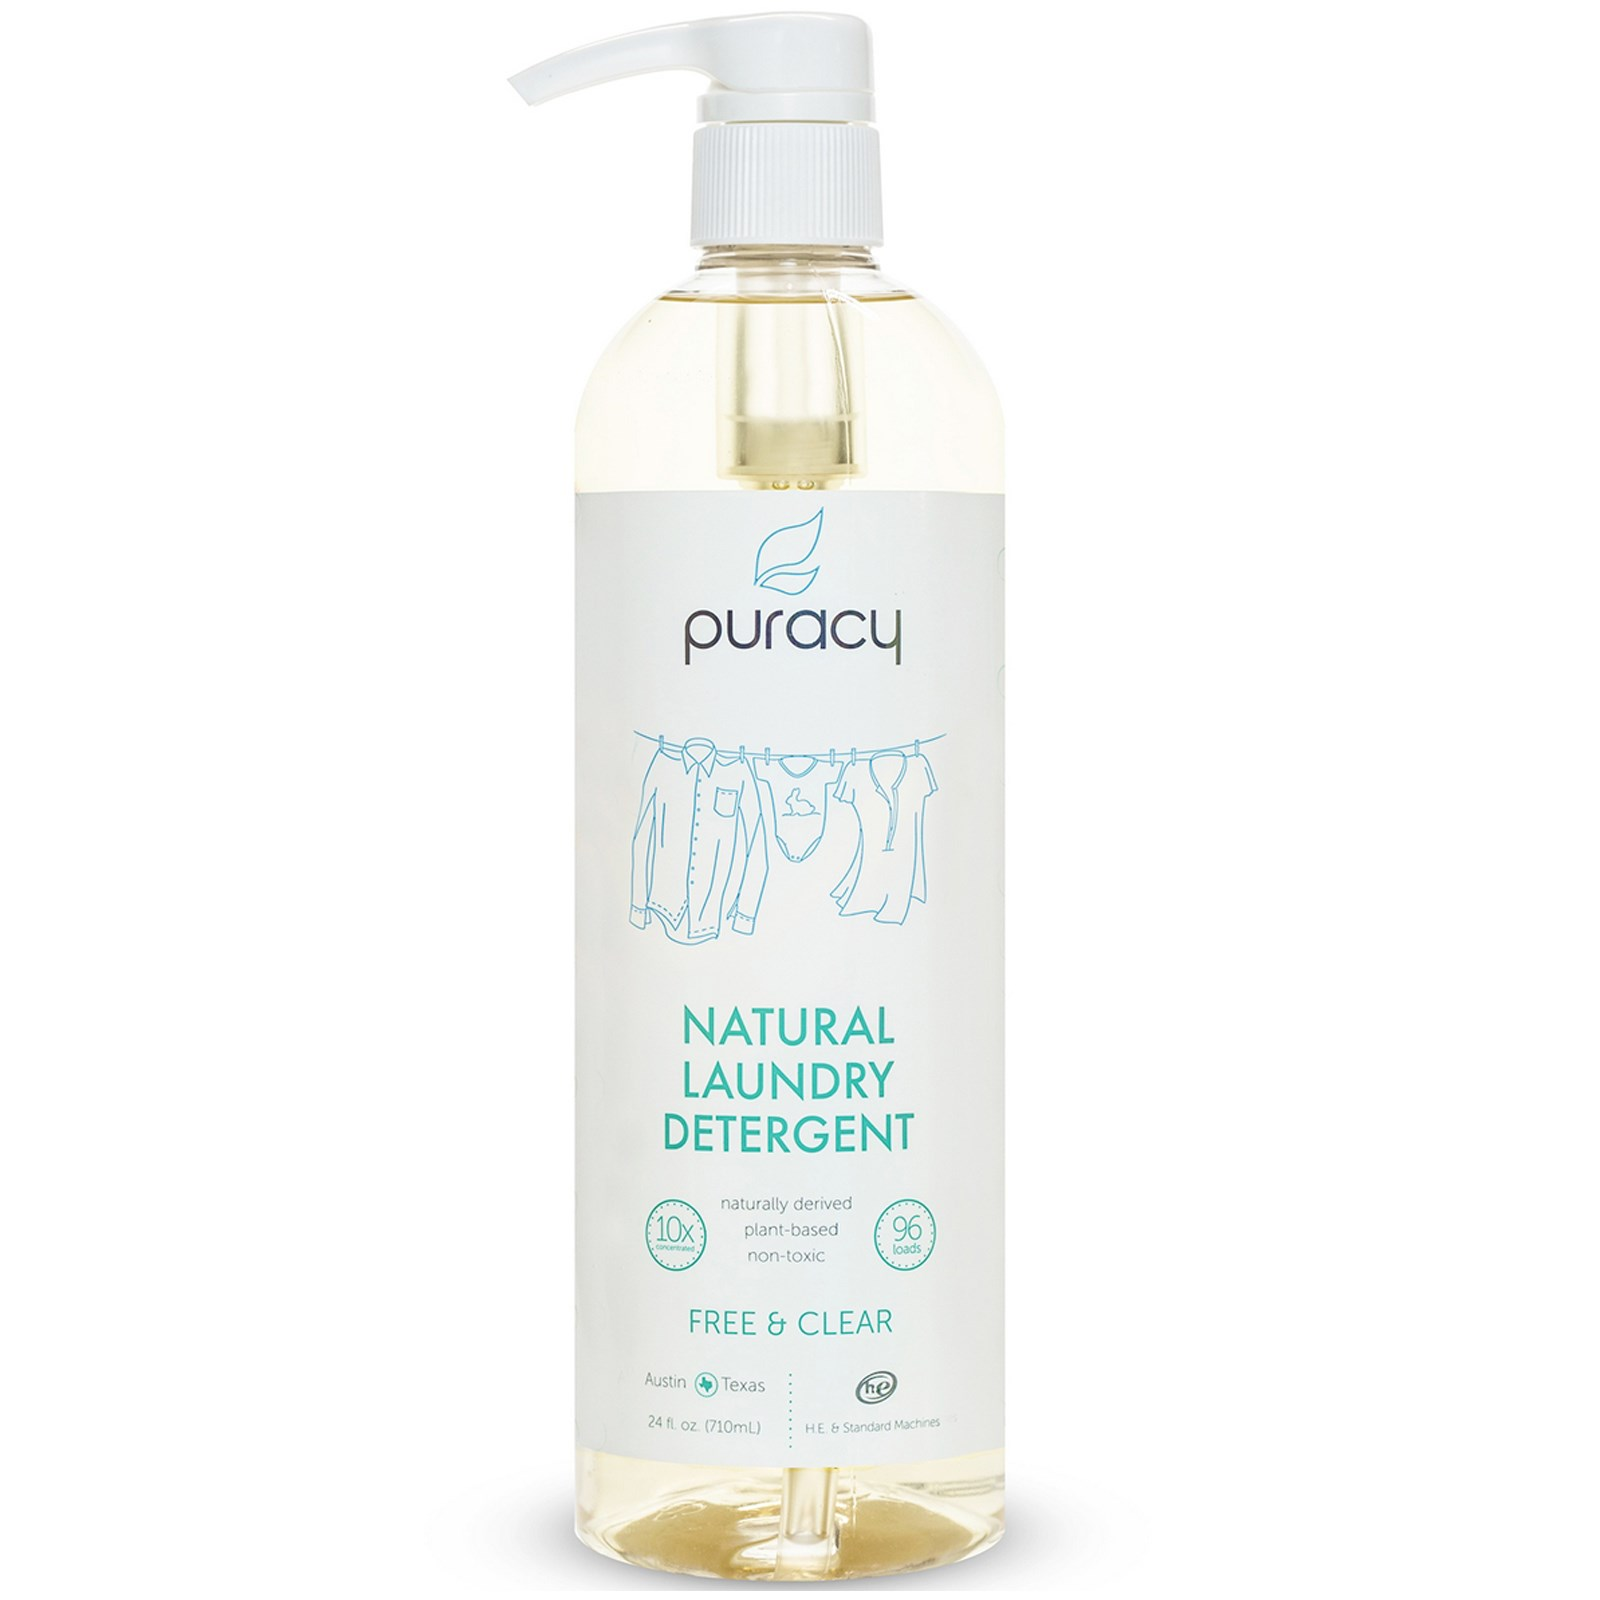 Pure Baby Laundry Liquid Refill Buy 2 Get 3 700 Ml Puracy Natural Detergent Free Clear 24 Fl Oz 710